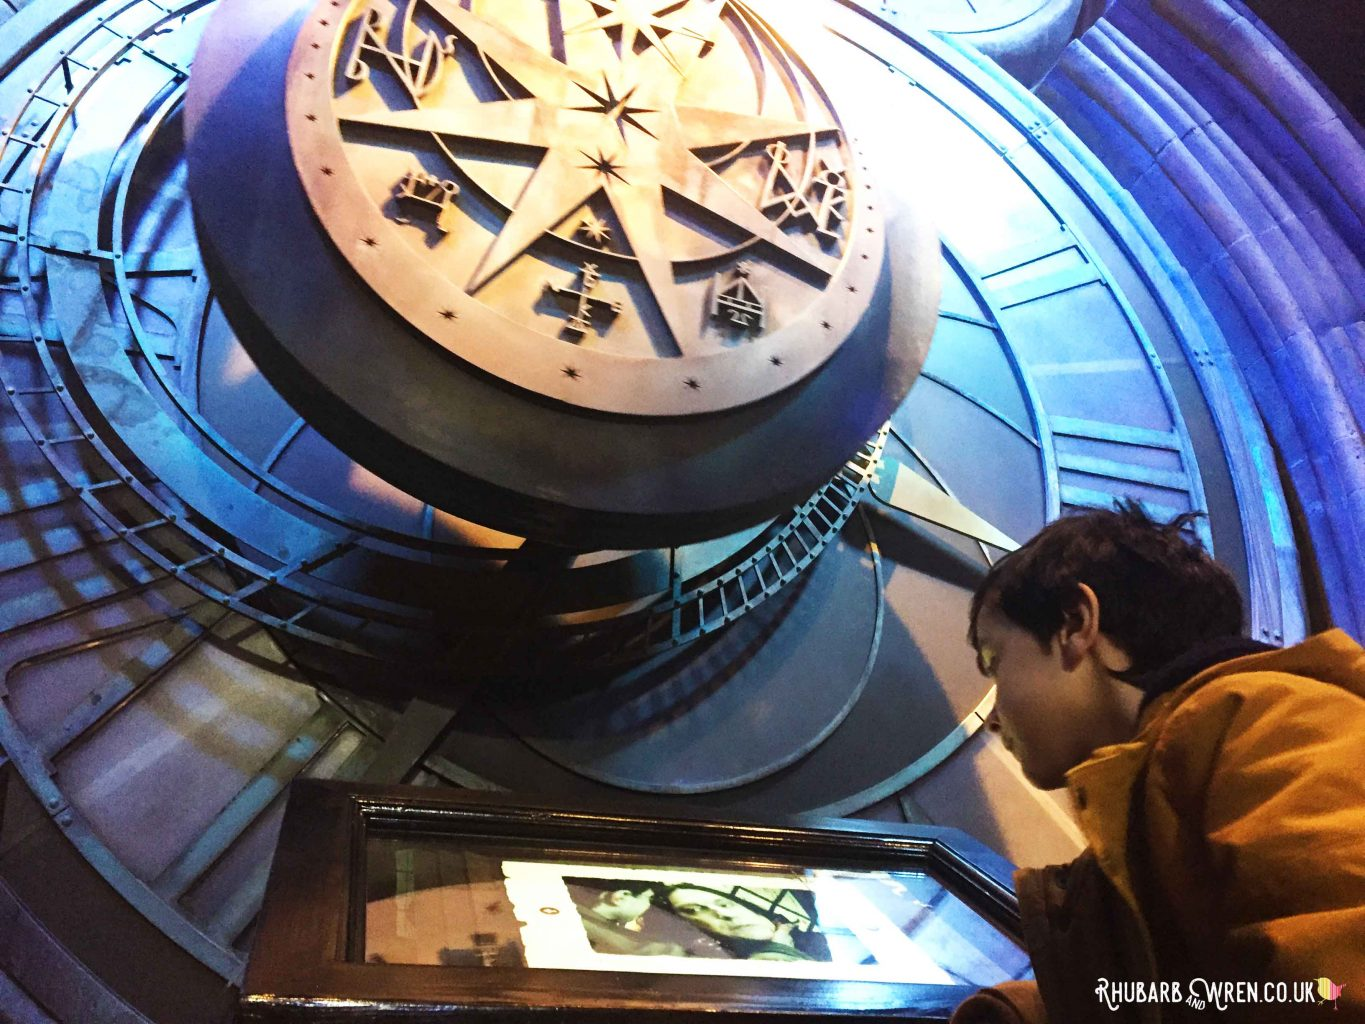 Interactive exhibit at the Harry Potter studio tour